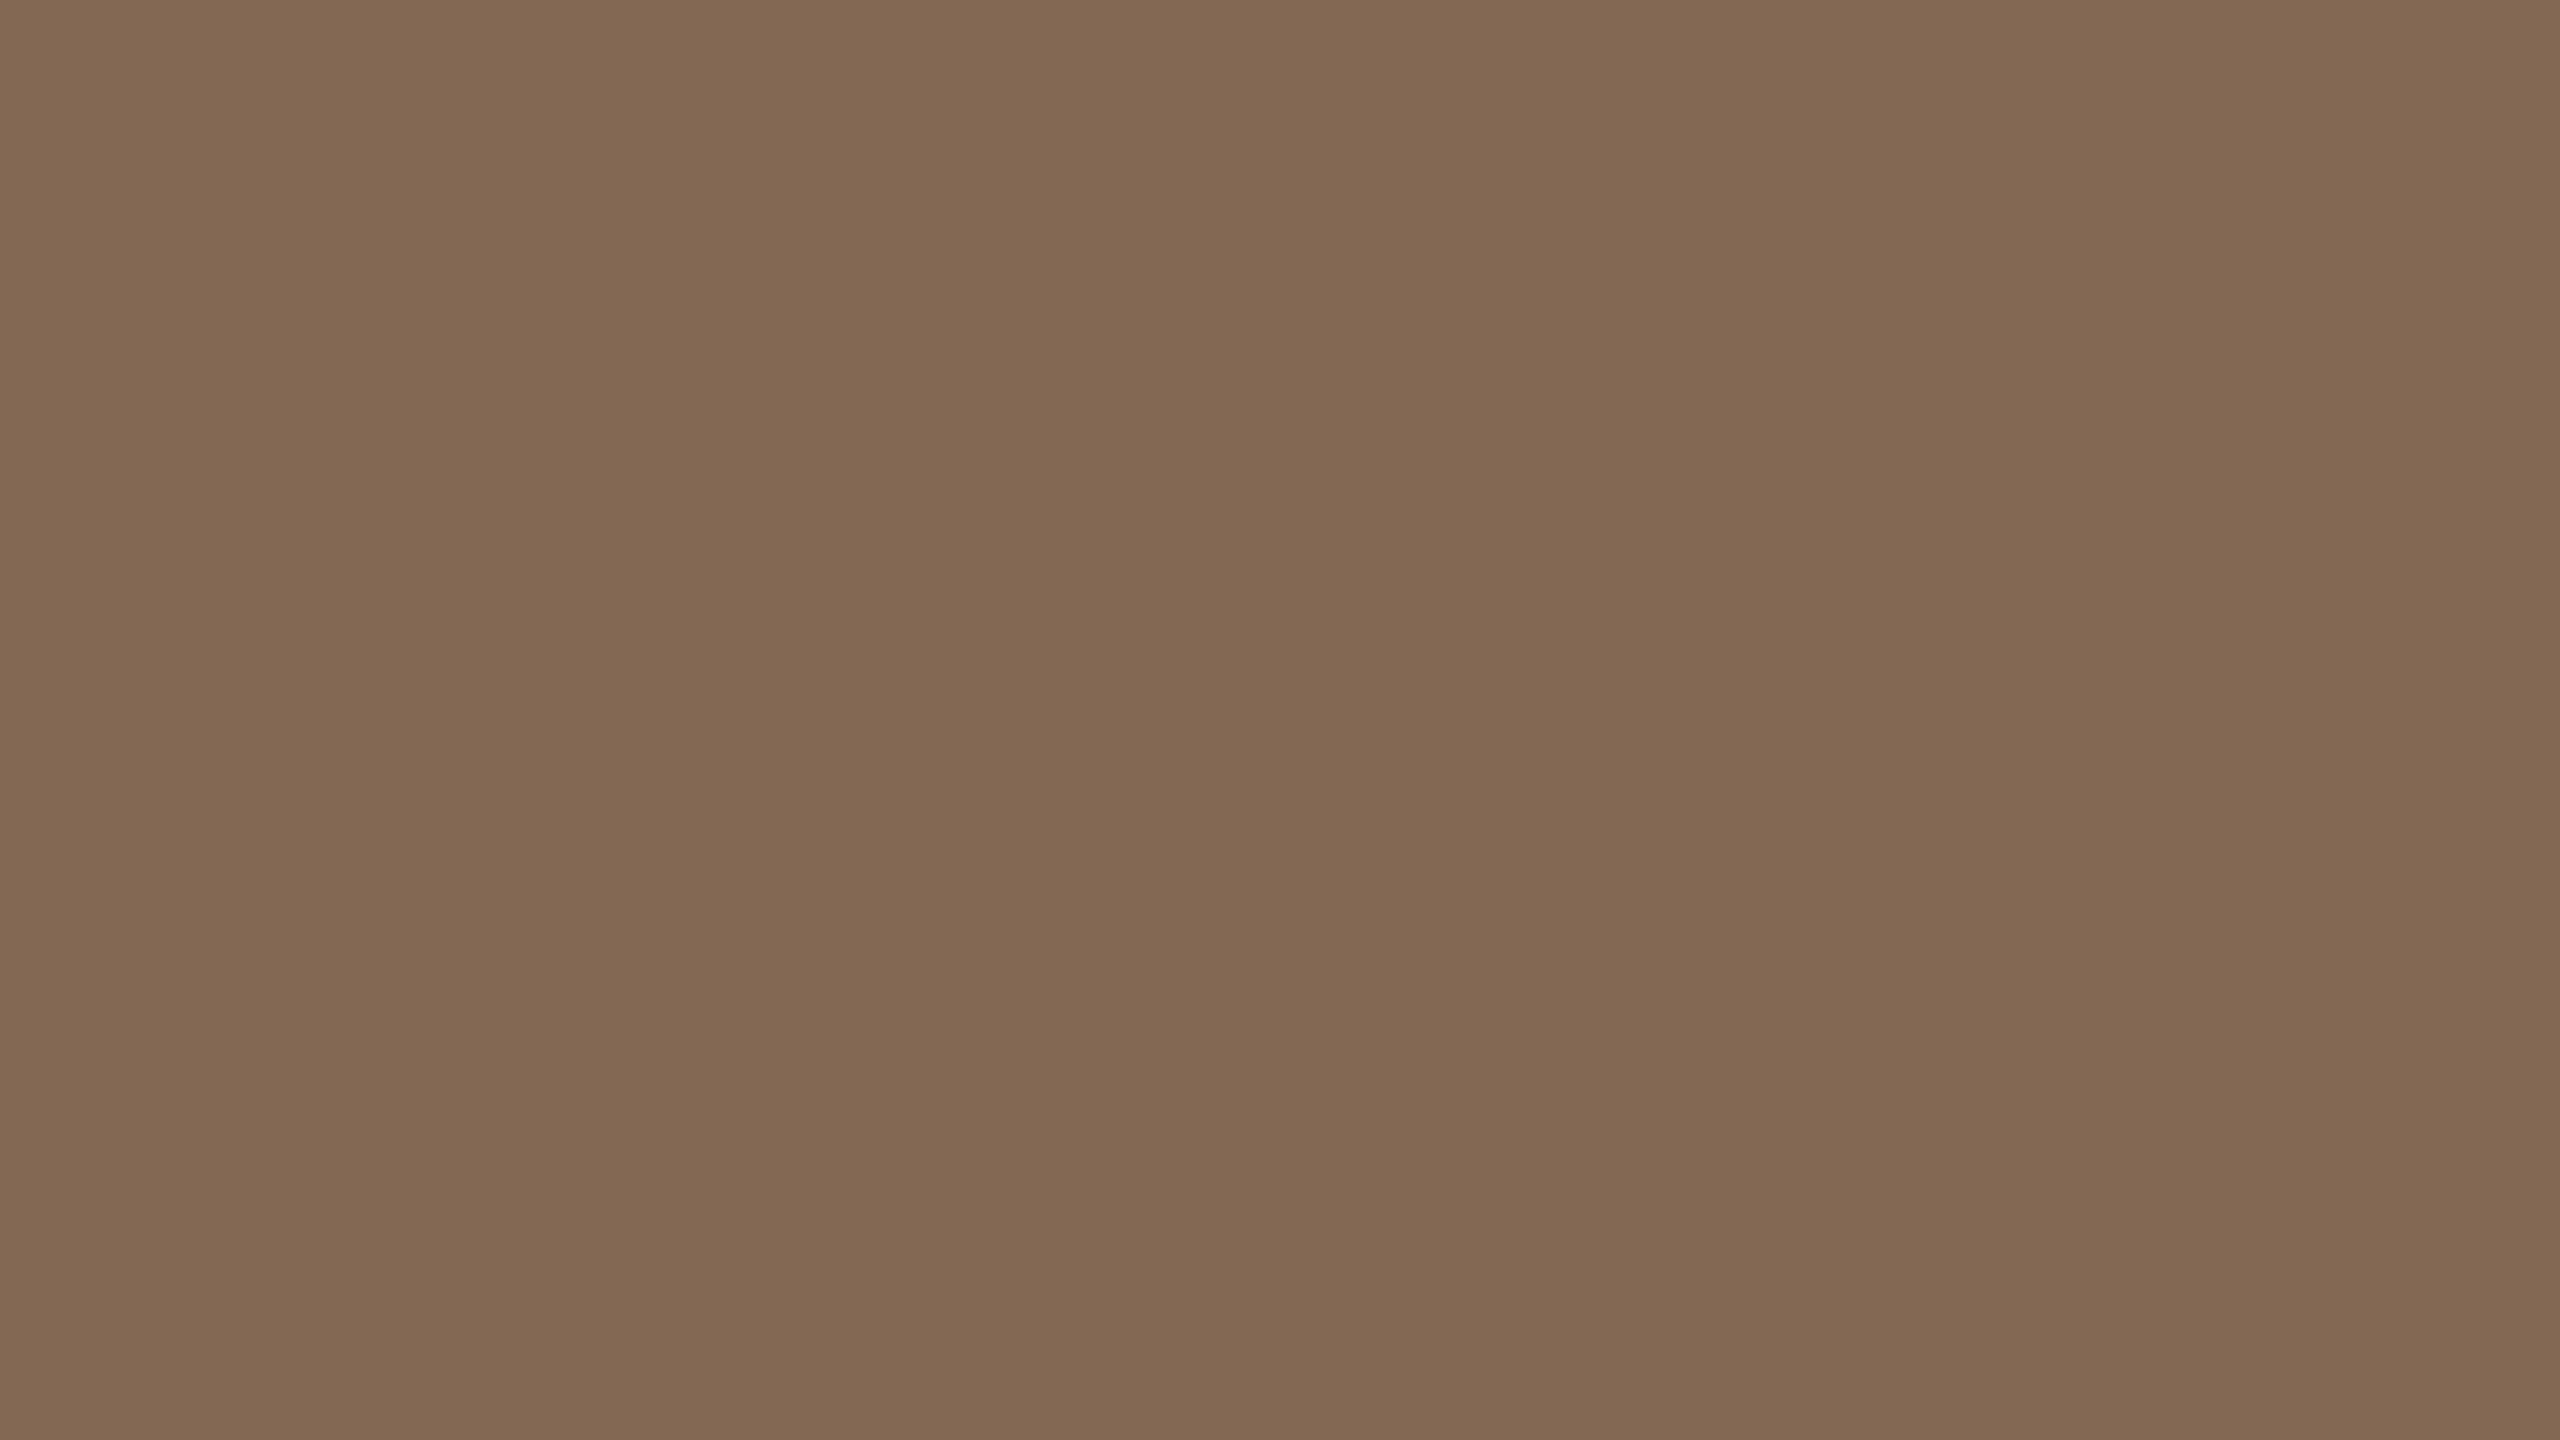 2560x1440 Pastel Brown Solid Color Background